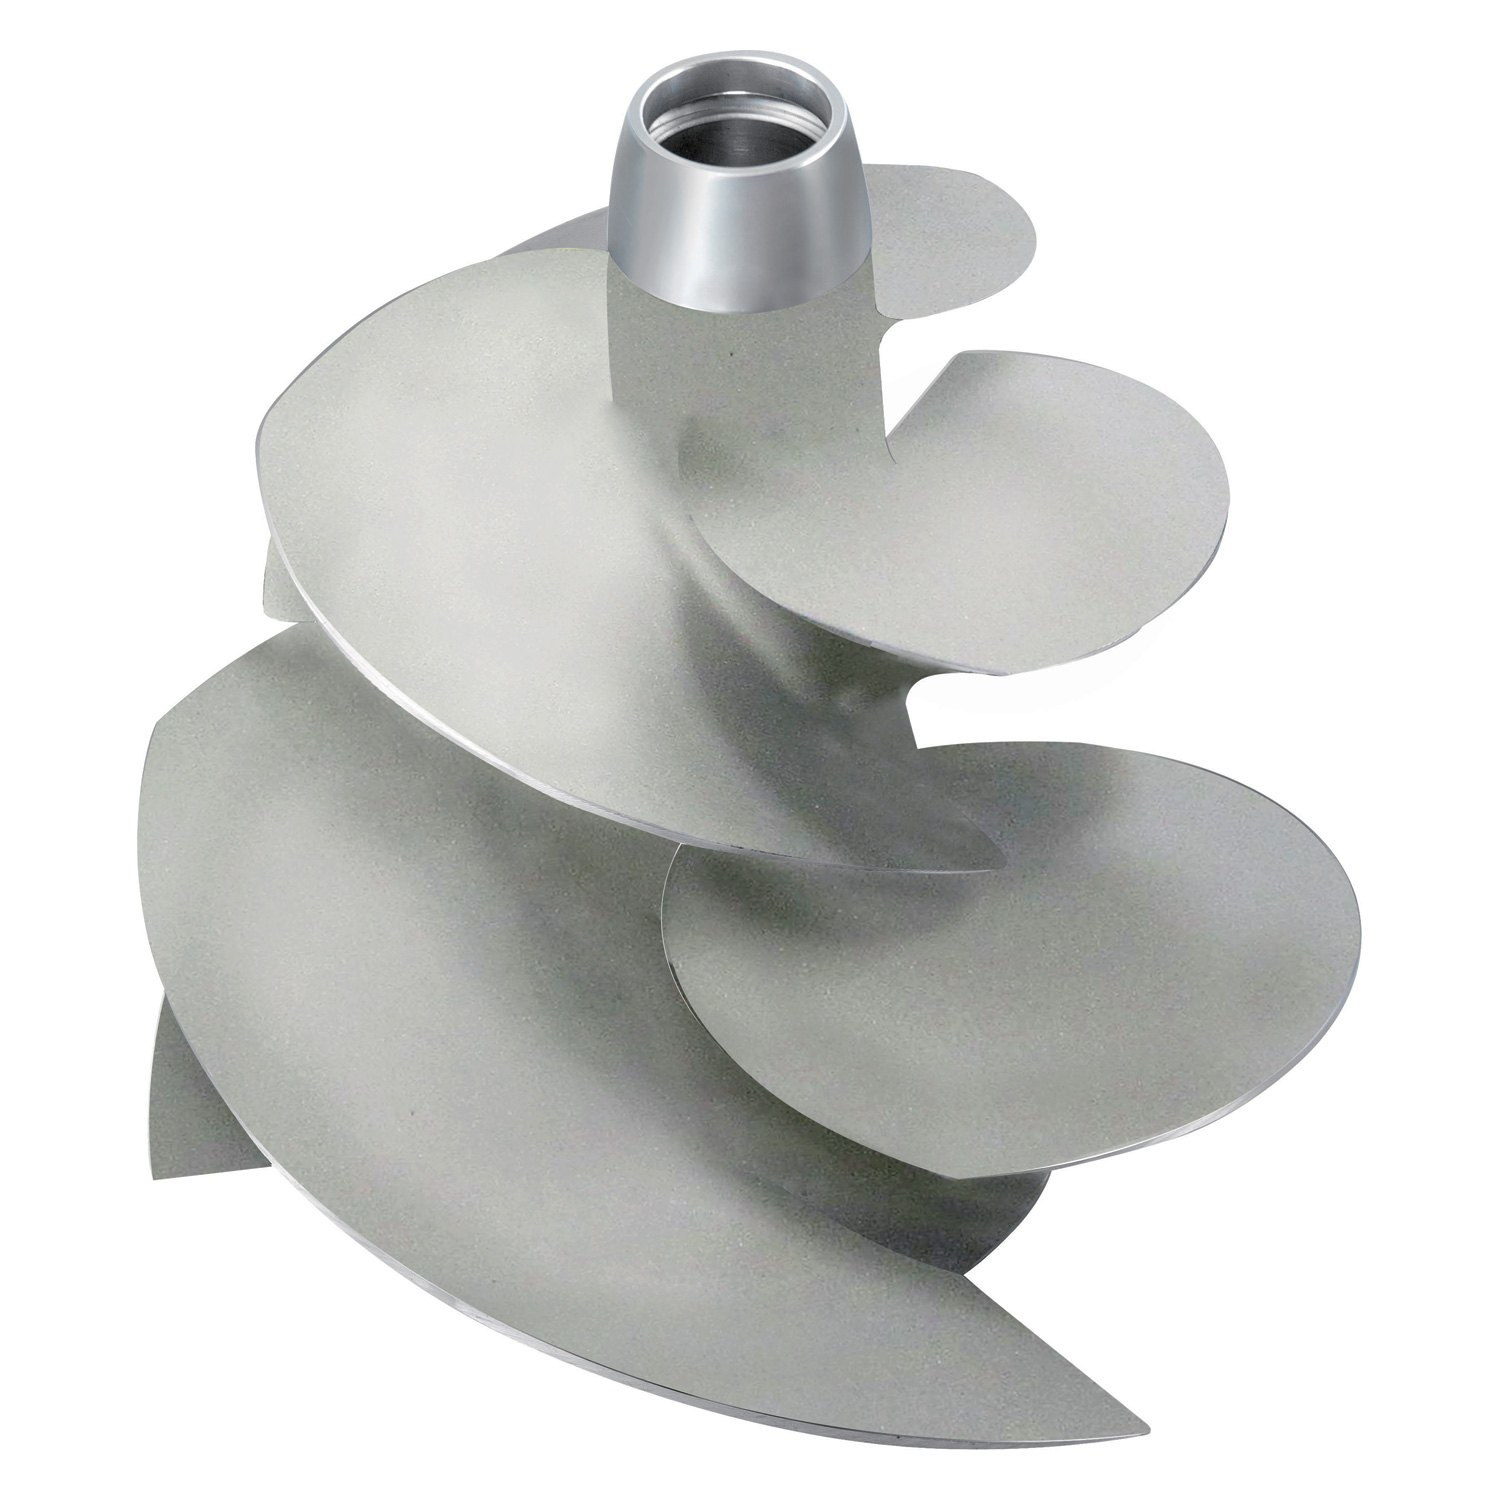 SOLAS Propellers® YV-TP-12/20 - Twinch Series 12/20 Impeller